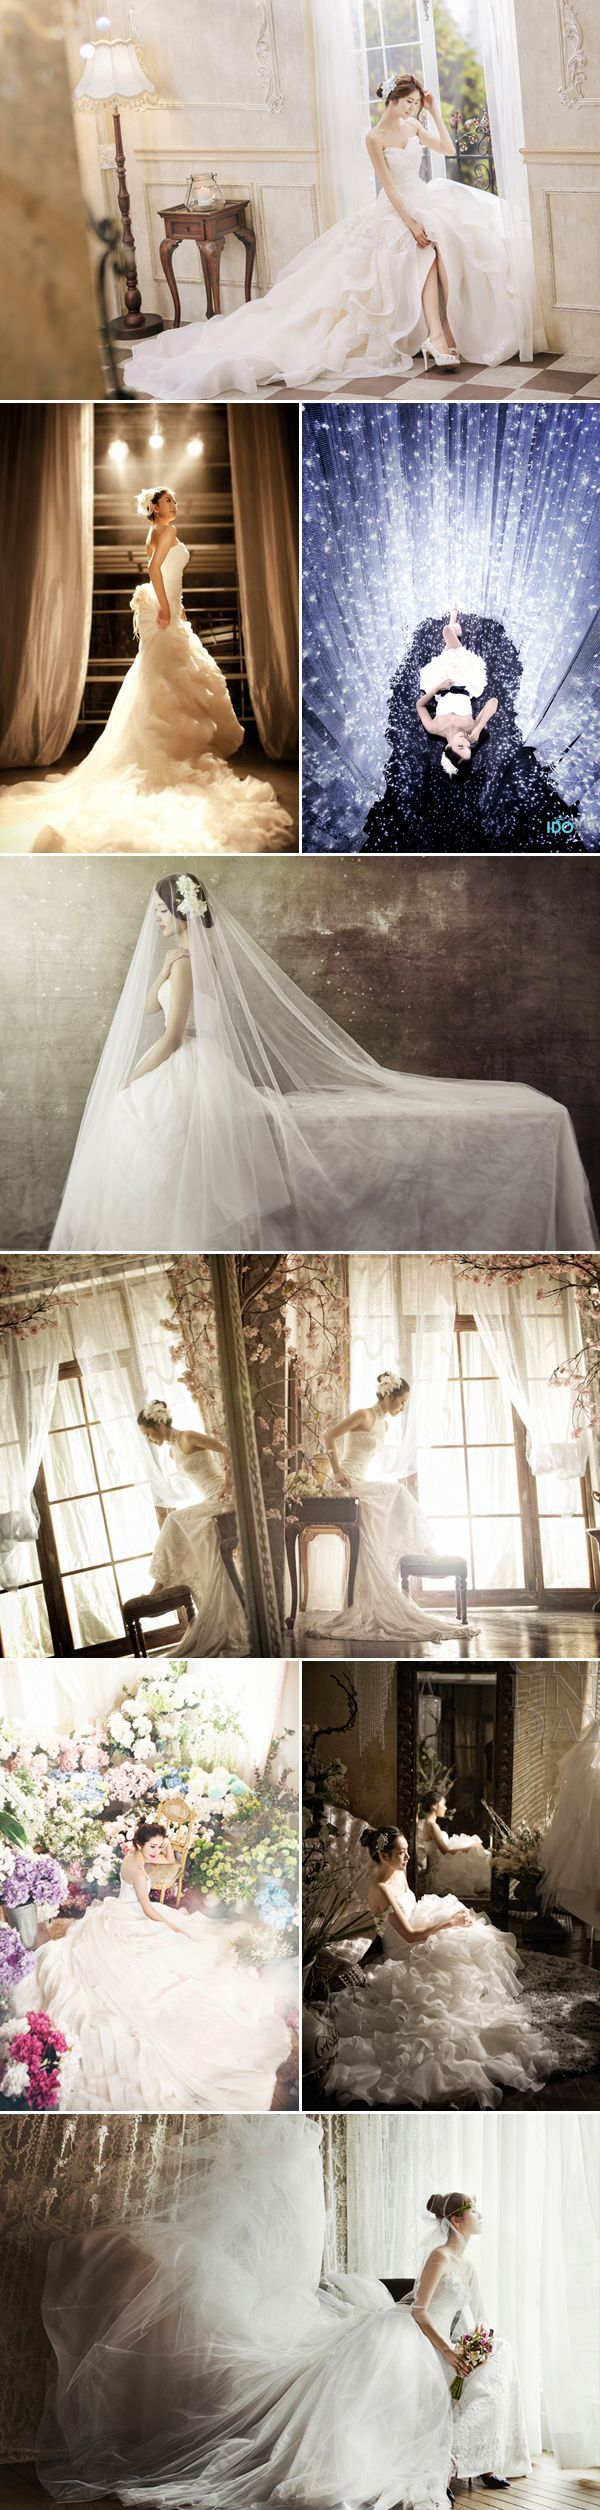 If you love the dreamy, romantic scenes from Korean dramas and want to be the star of your very own story, taking Korean concept pre-wedding photos may be your chance to experience a dream-come-true. Couples from all around the world fly to Korea to have their pre-wedding photos taken, and the packages usually include full …